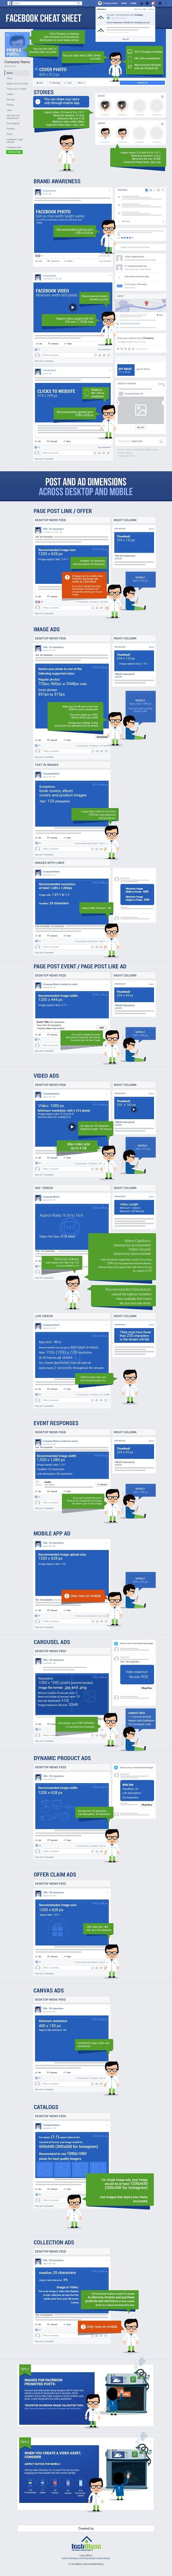 The Complete Facebook Image Sizes and Ad Dimensions Cheatsheet (2020) #Infographic